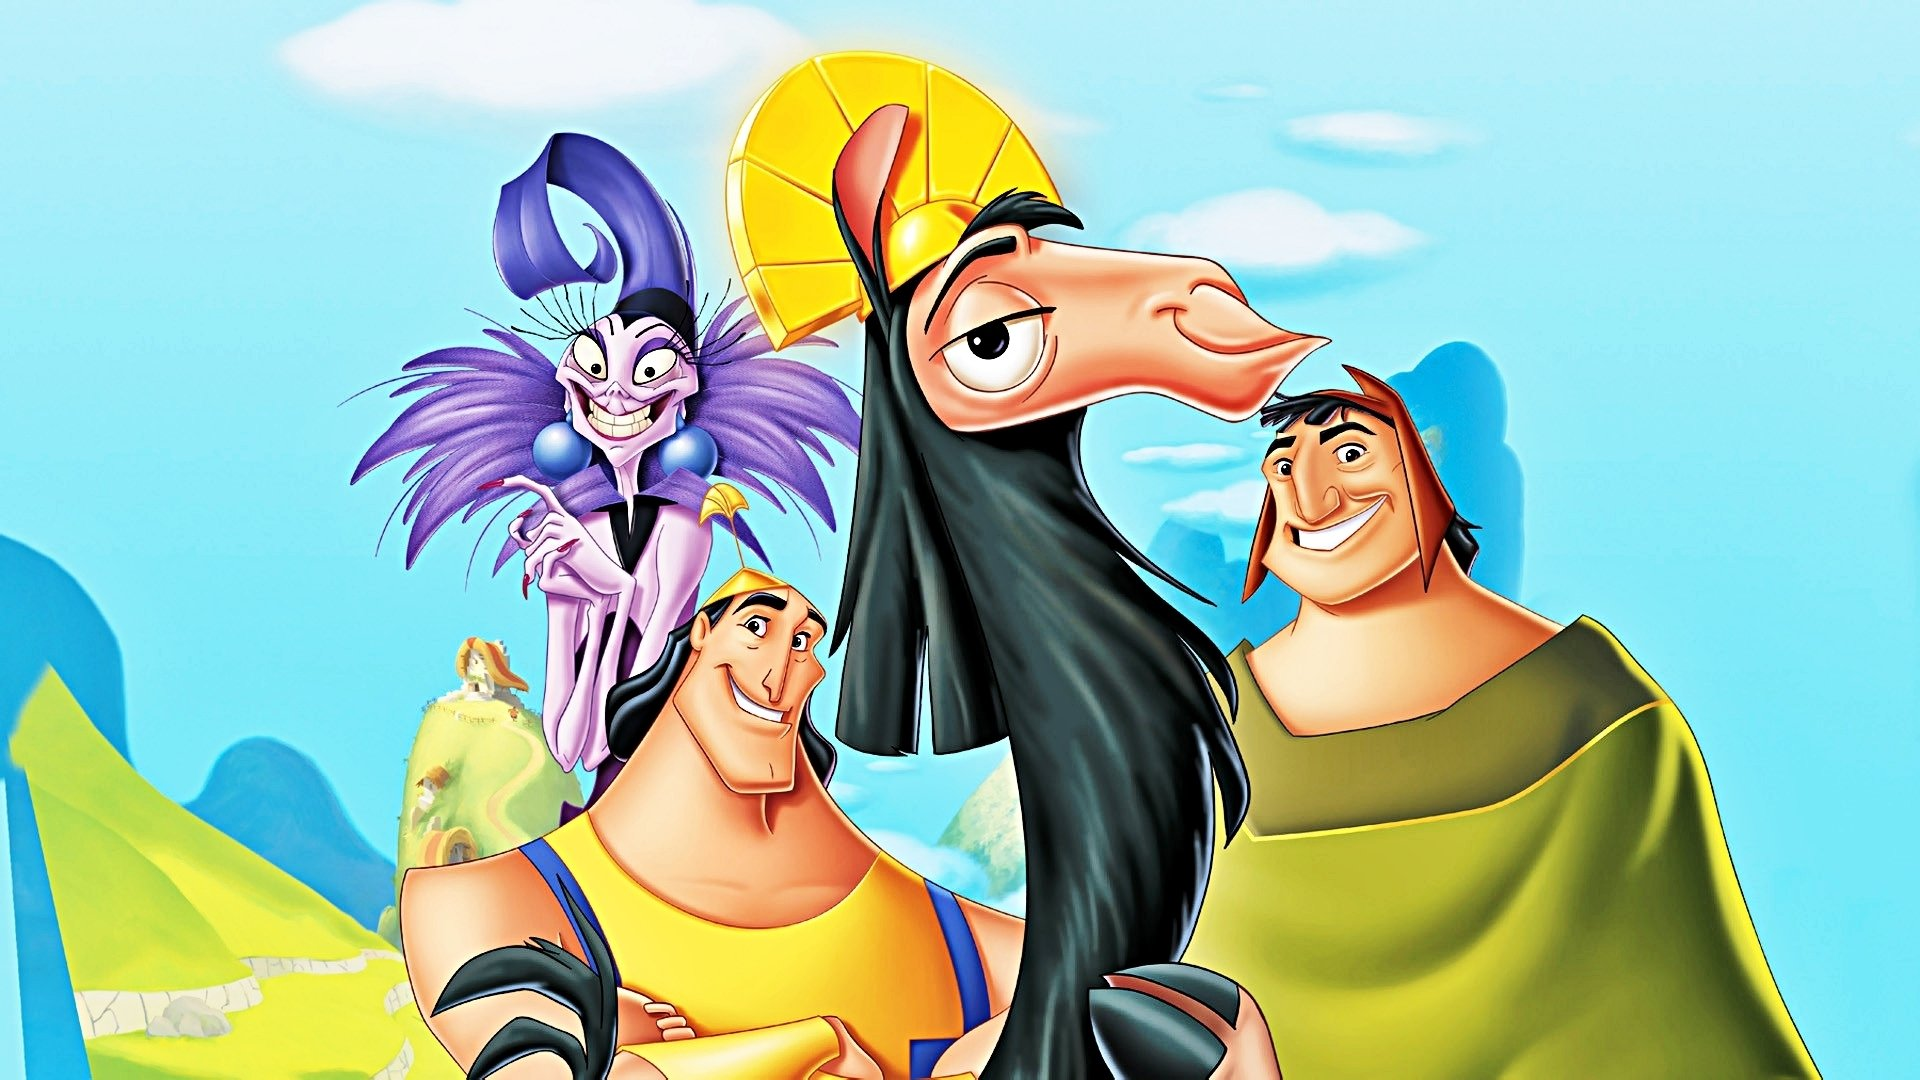 Disney Wallpapers   The Emperors New Groove   Walt Disney Characters 1920x1080